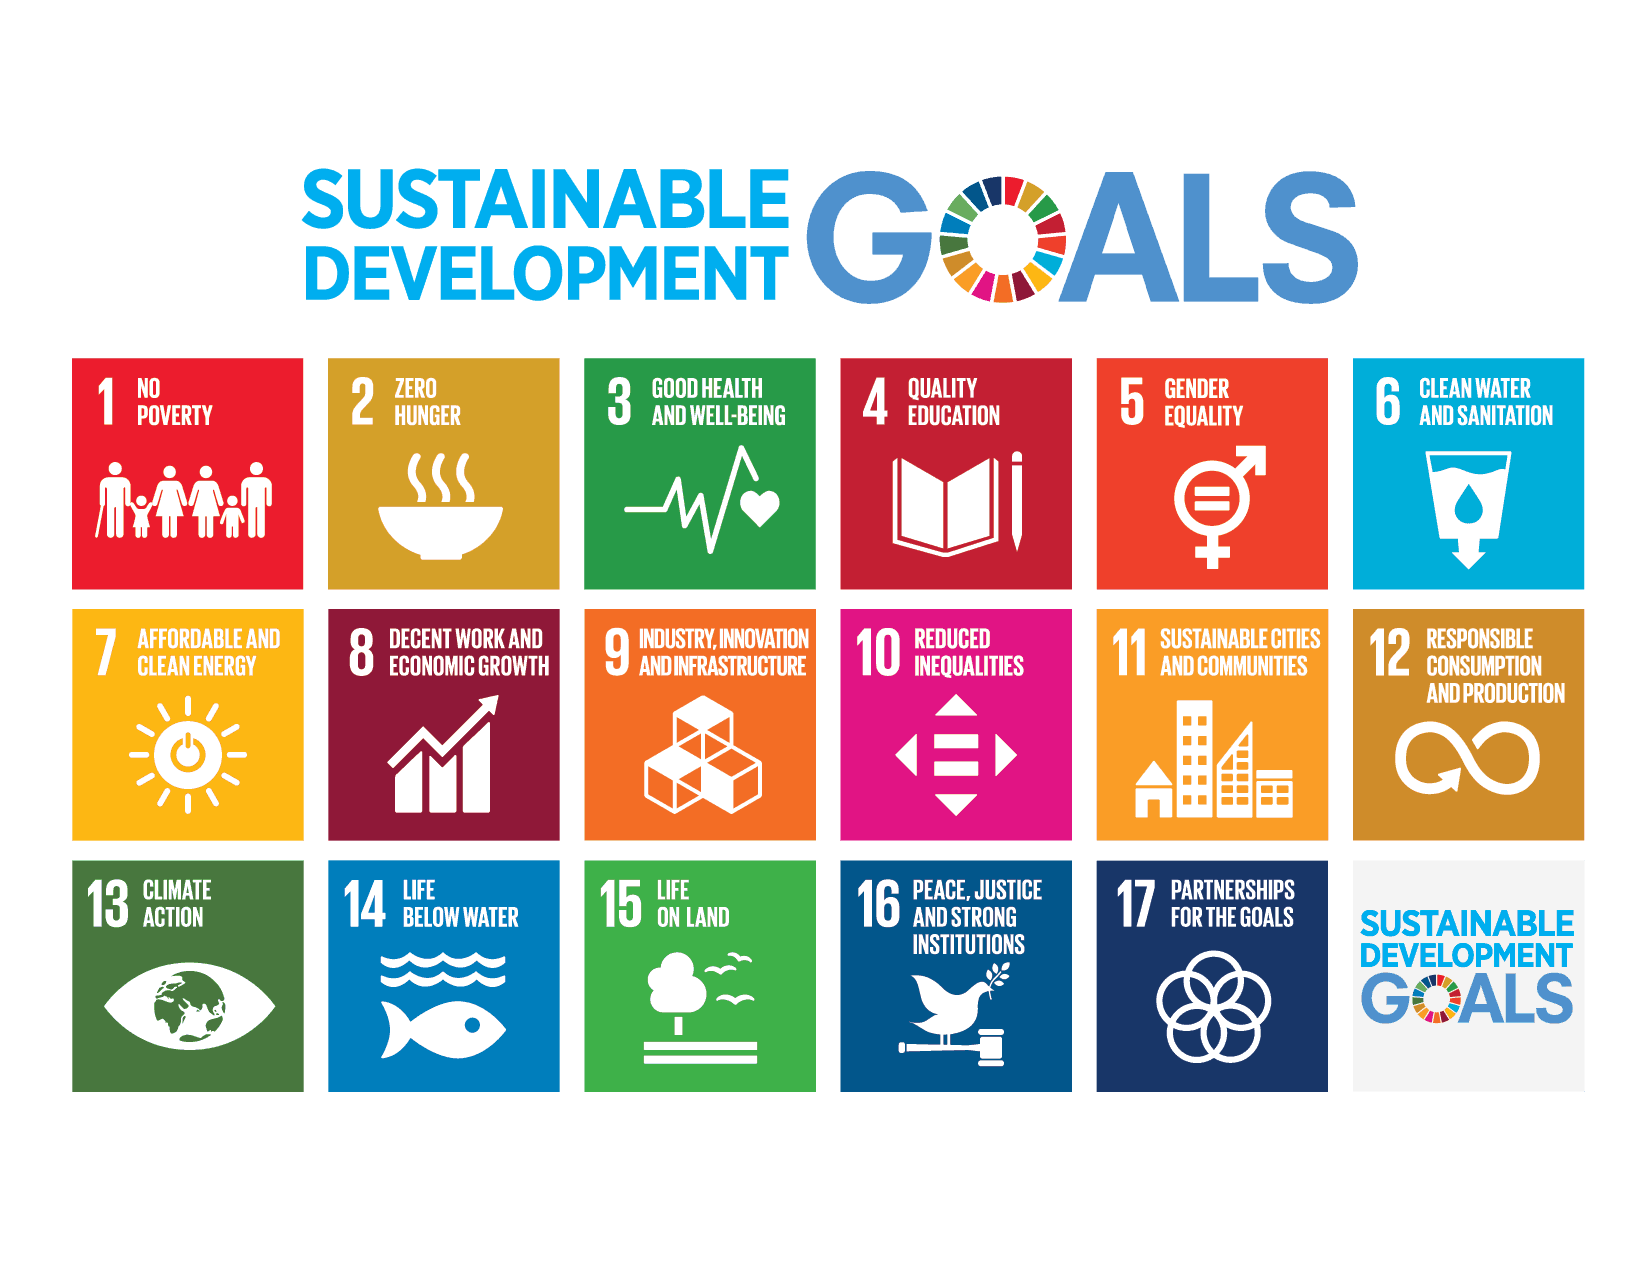 Our guide to incorporating the SDGs: Moving from theory to action